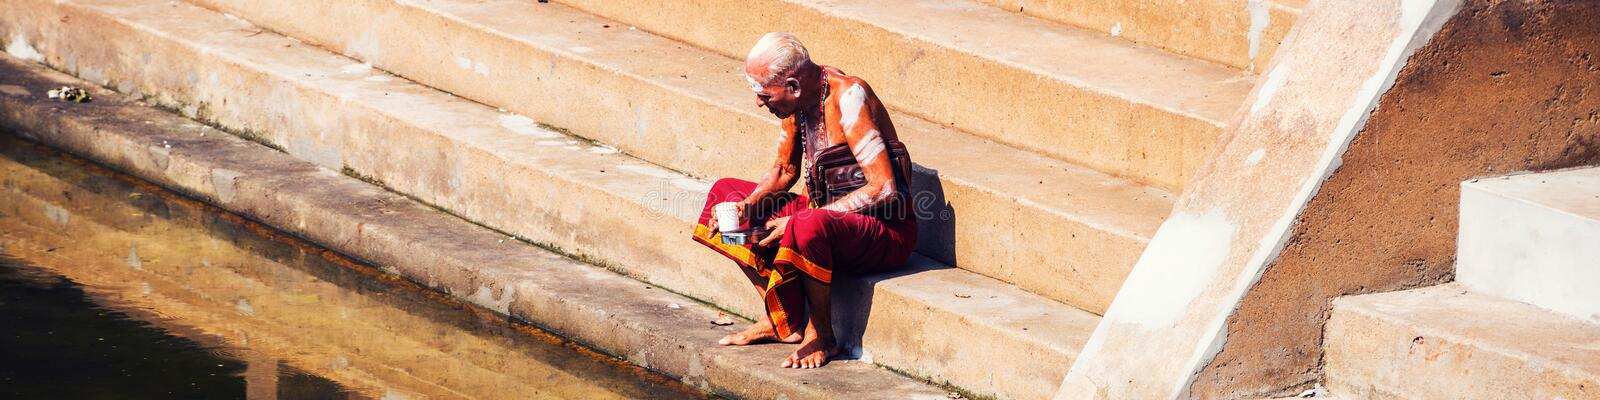 Old man wearing typical robe siting at Sree Padmanabhaswamy Temple pool during the sunny day in Trivandrum, India. TRIVANDRUM, INDIA - MAY 15, 2016: Old man royalty free stock photo